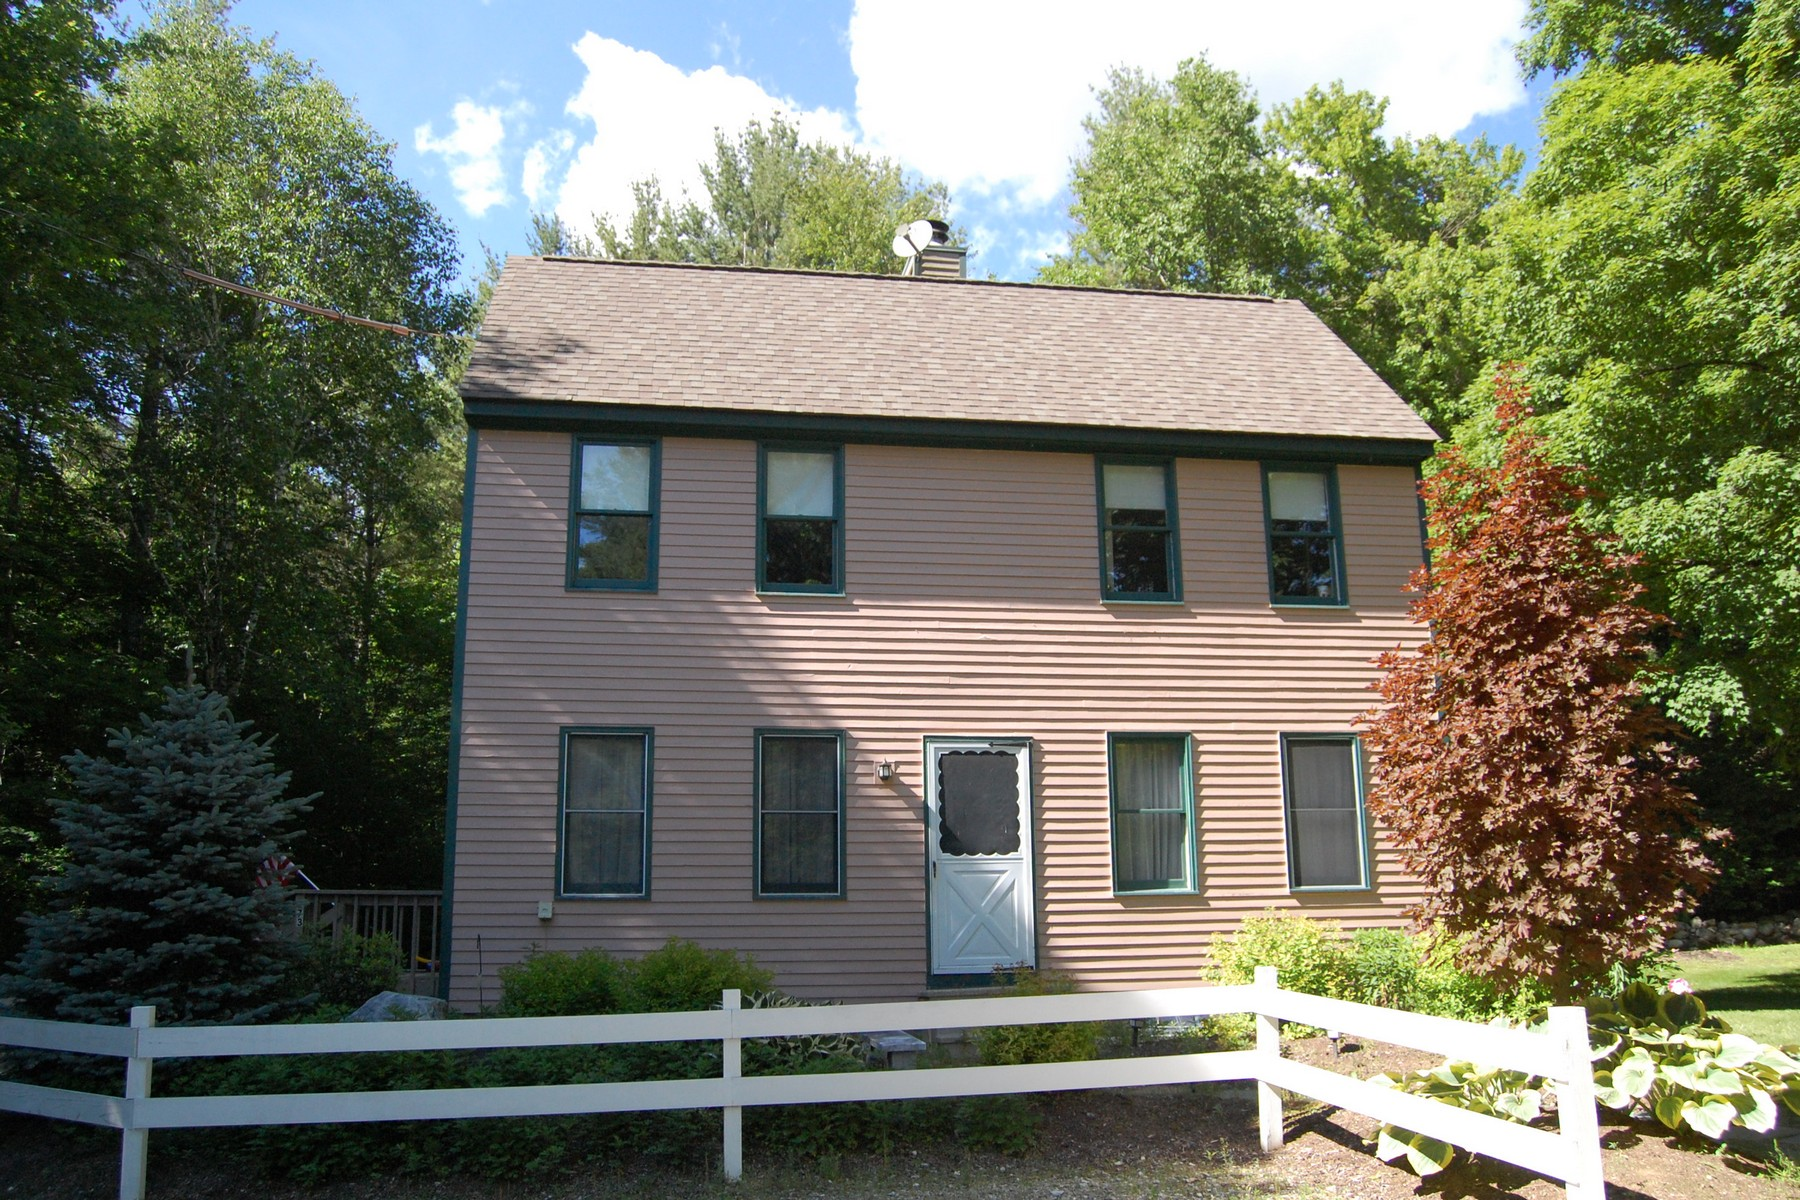 Single Family Home for Sale at Cozy Saltbox with Private Yard 273 Carlen St Manchester, Vermont 05255 United States